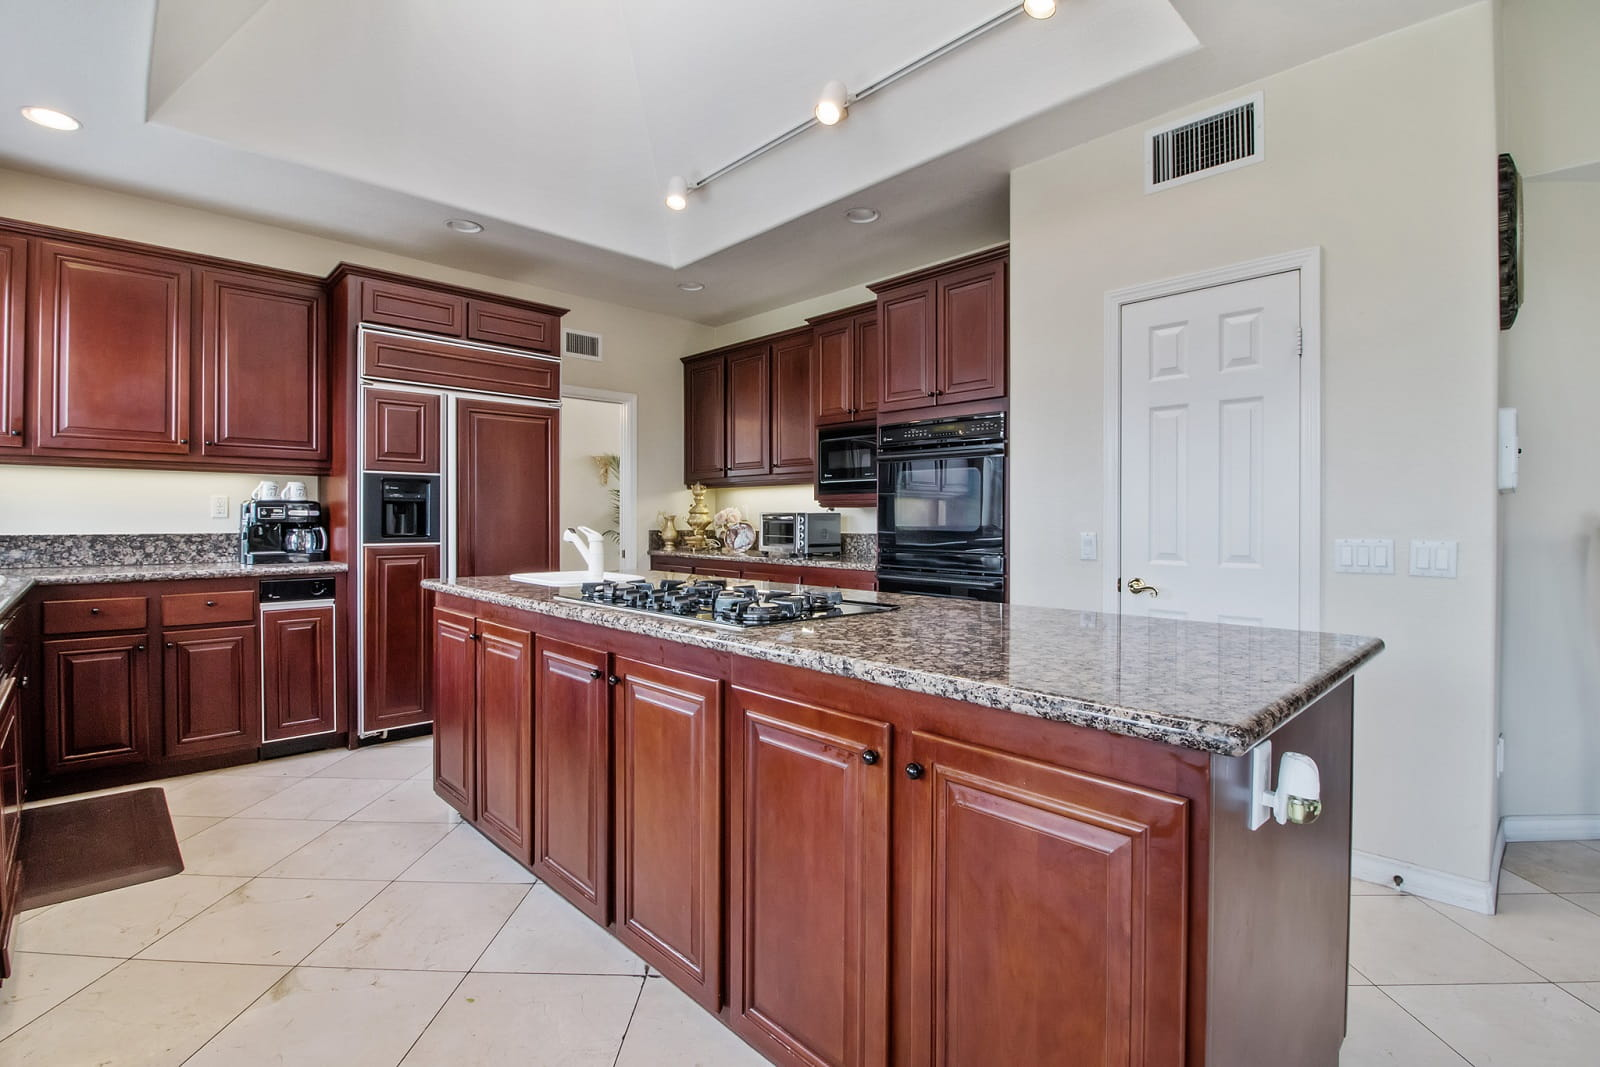 Real Estate Photography in Anaheim - CA - USA - Kitchen View